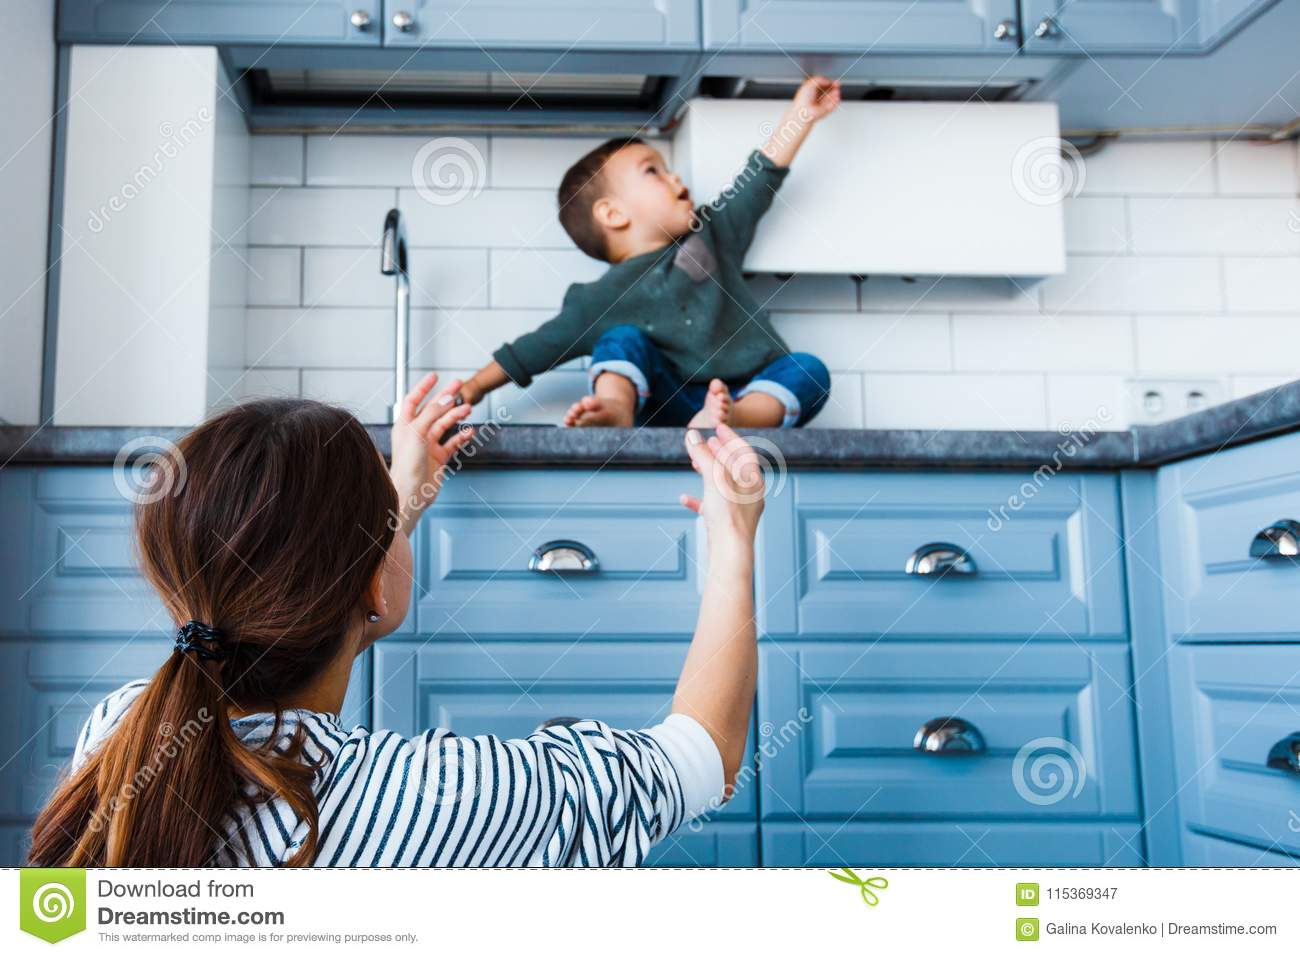 Toddler Child In Kitchen Children Safety At Home Concept Stock Image